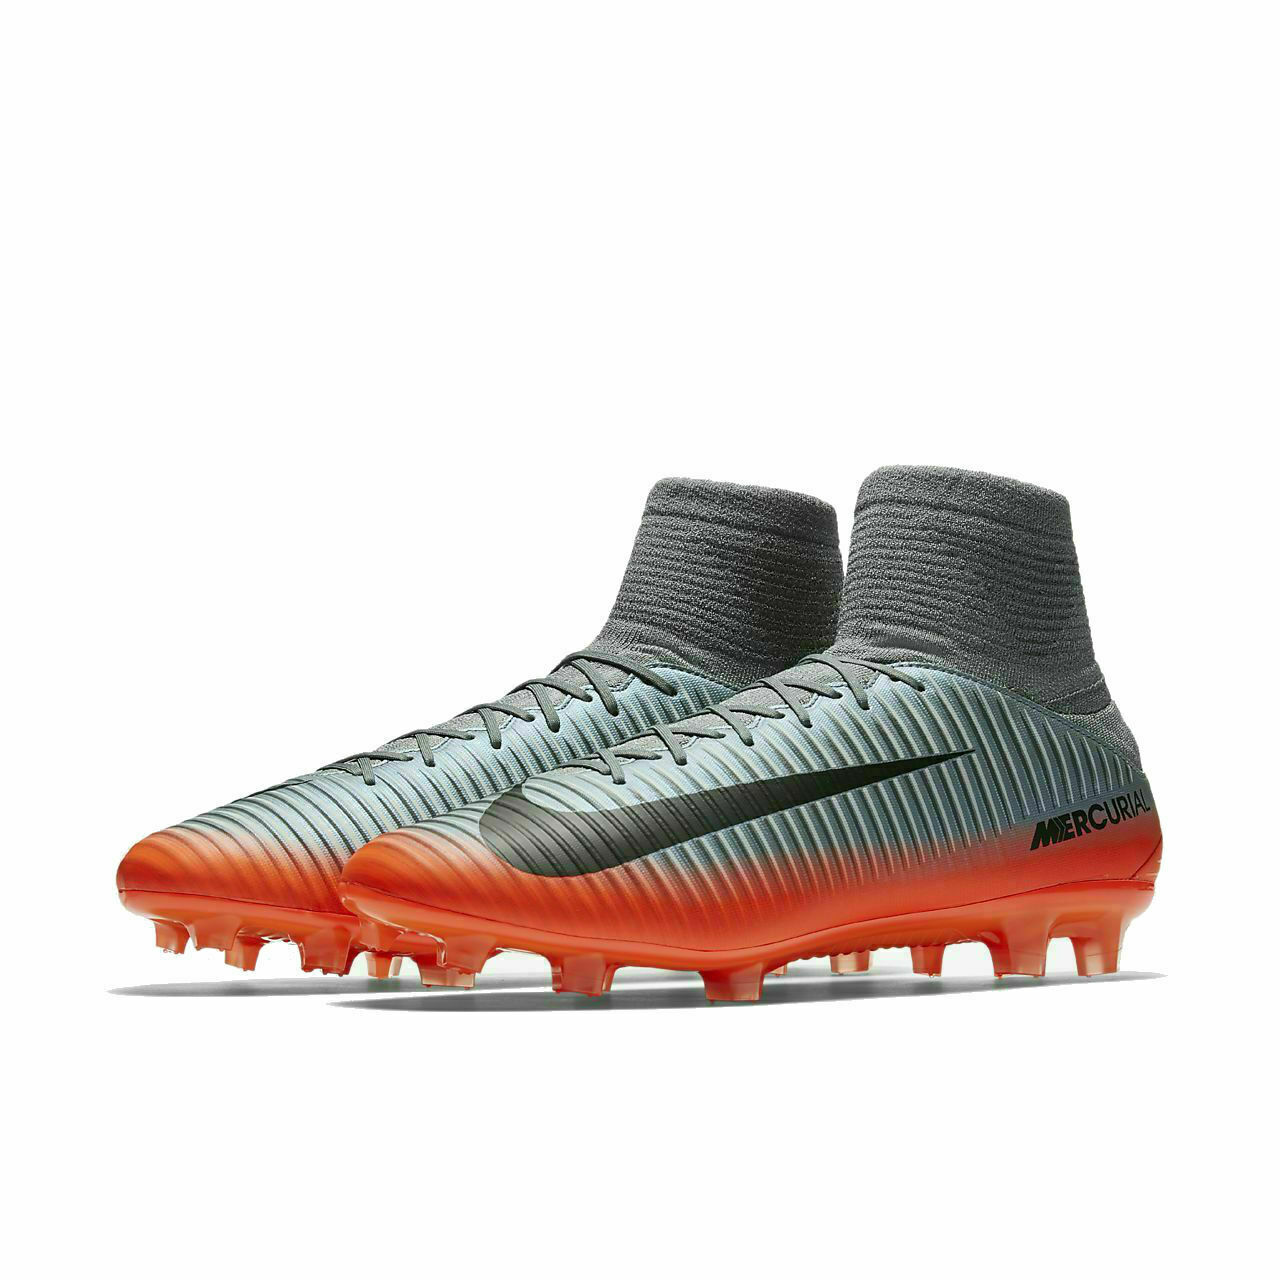 Visible Mirilla atmósfera  Nike Mercurial Victory VI 6 Cr7 FG Ronaldo Grey Men Soccer Shoes 852528-001  9.5 for sale online | eBay